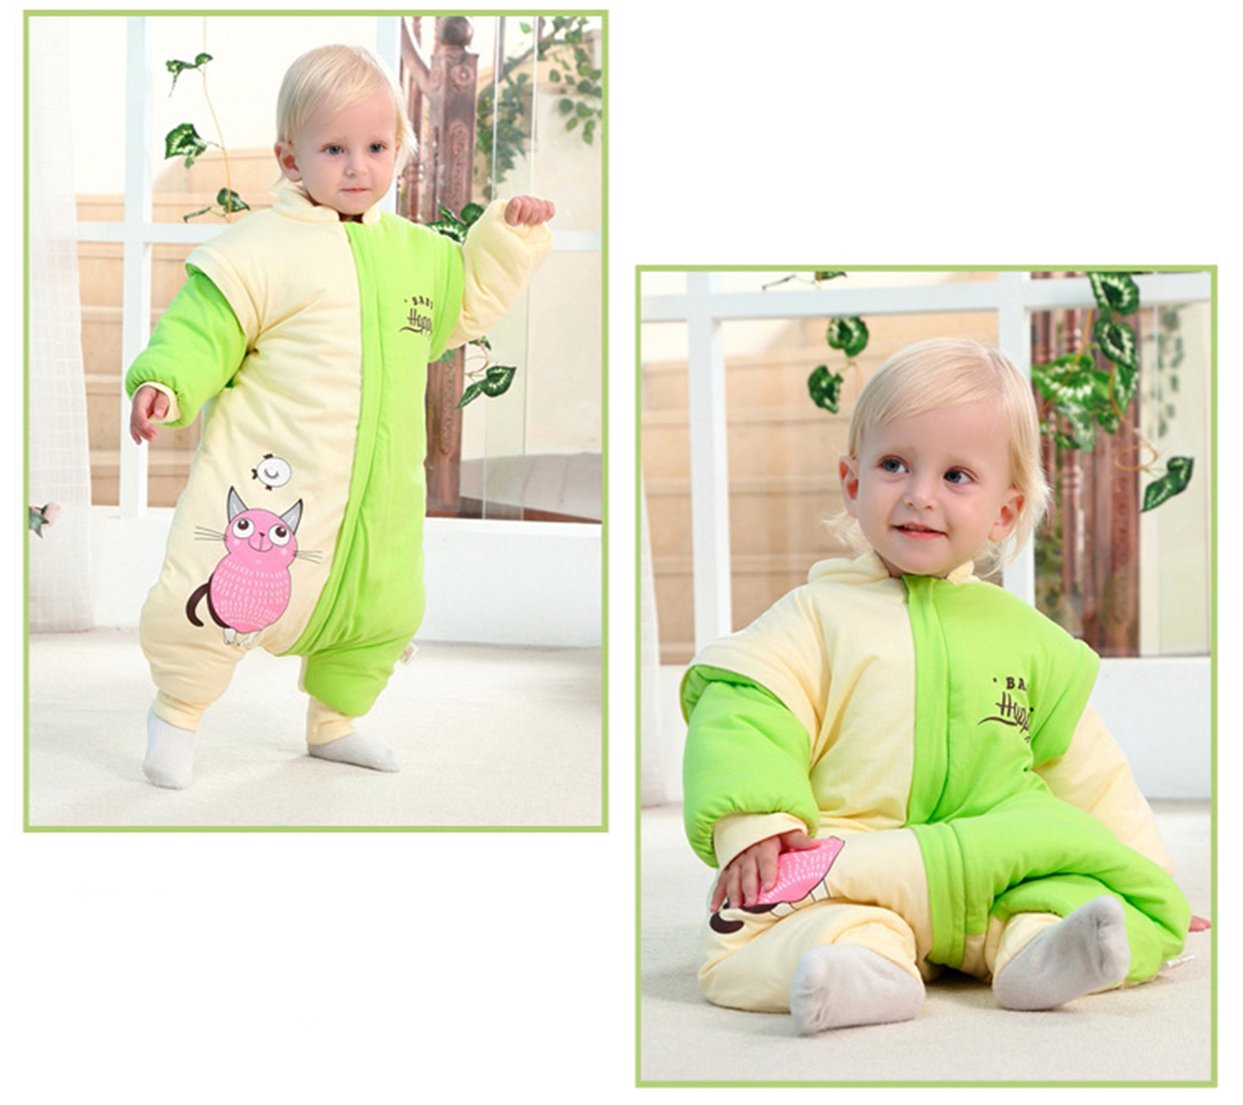 66a738d04c63 Amazon.com  Chilsuessy Winter Sleeping Bag for Baby with Feet ...